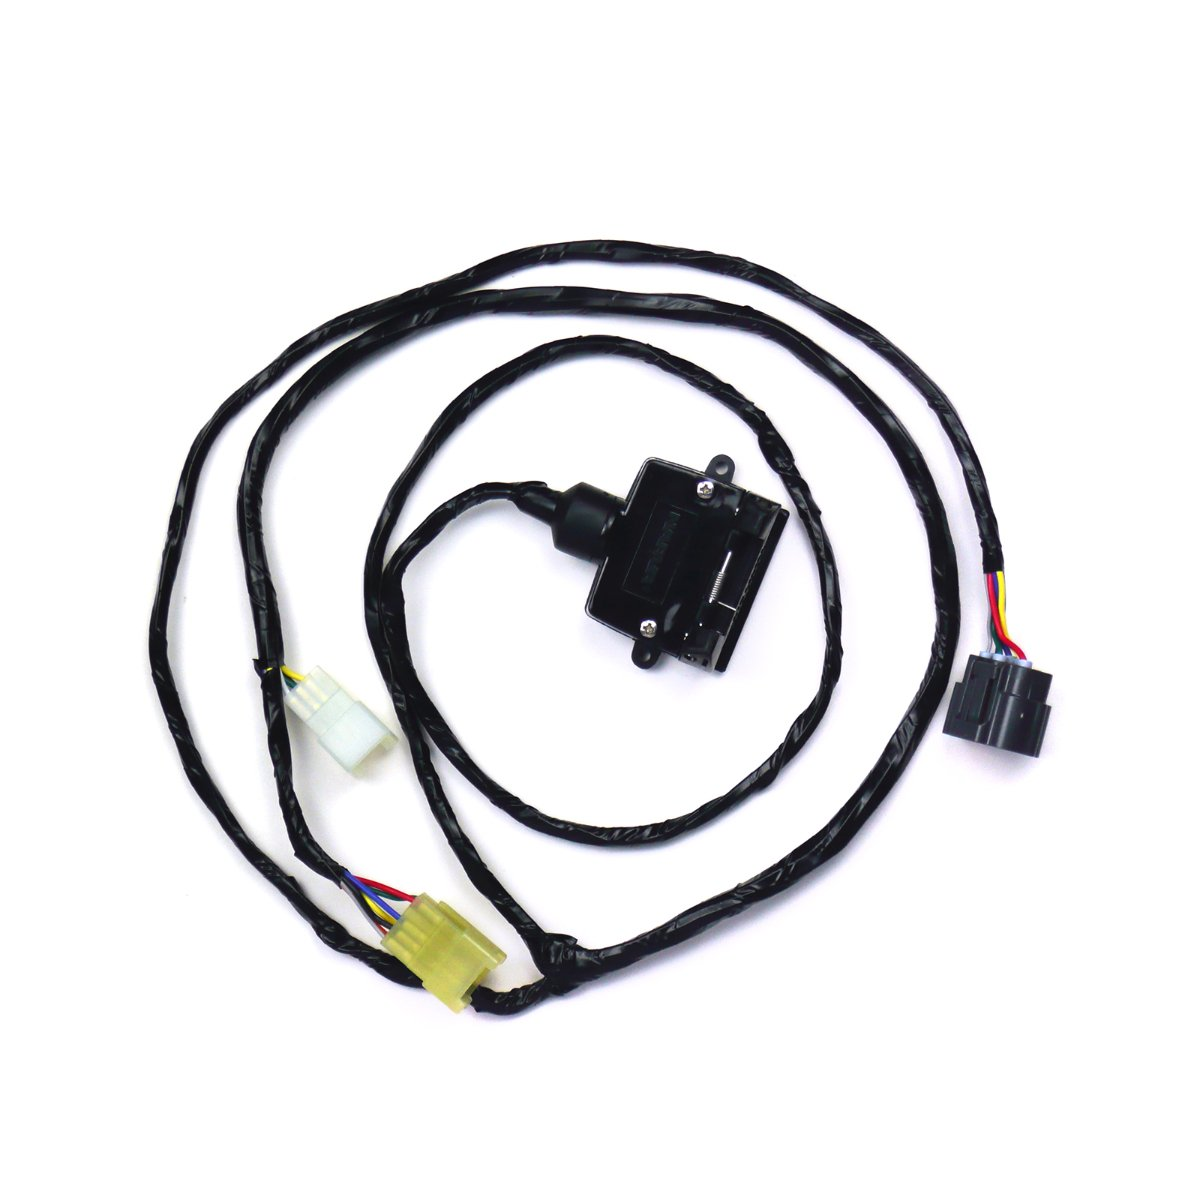 TAG Towbar Wiring Direct Fit to suit Ford Falcon (09/1998 - 10/2016), Fairmont (09/1998 - 01/2008), LTD (07/2003 - 09/2005), Fairlane (07/2003 - 09/2005)